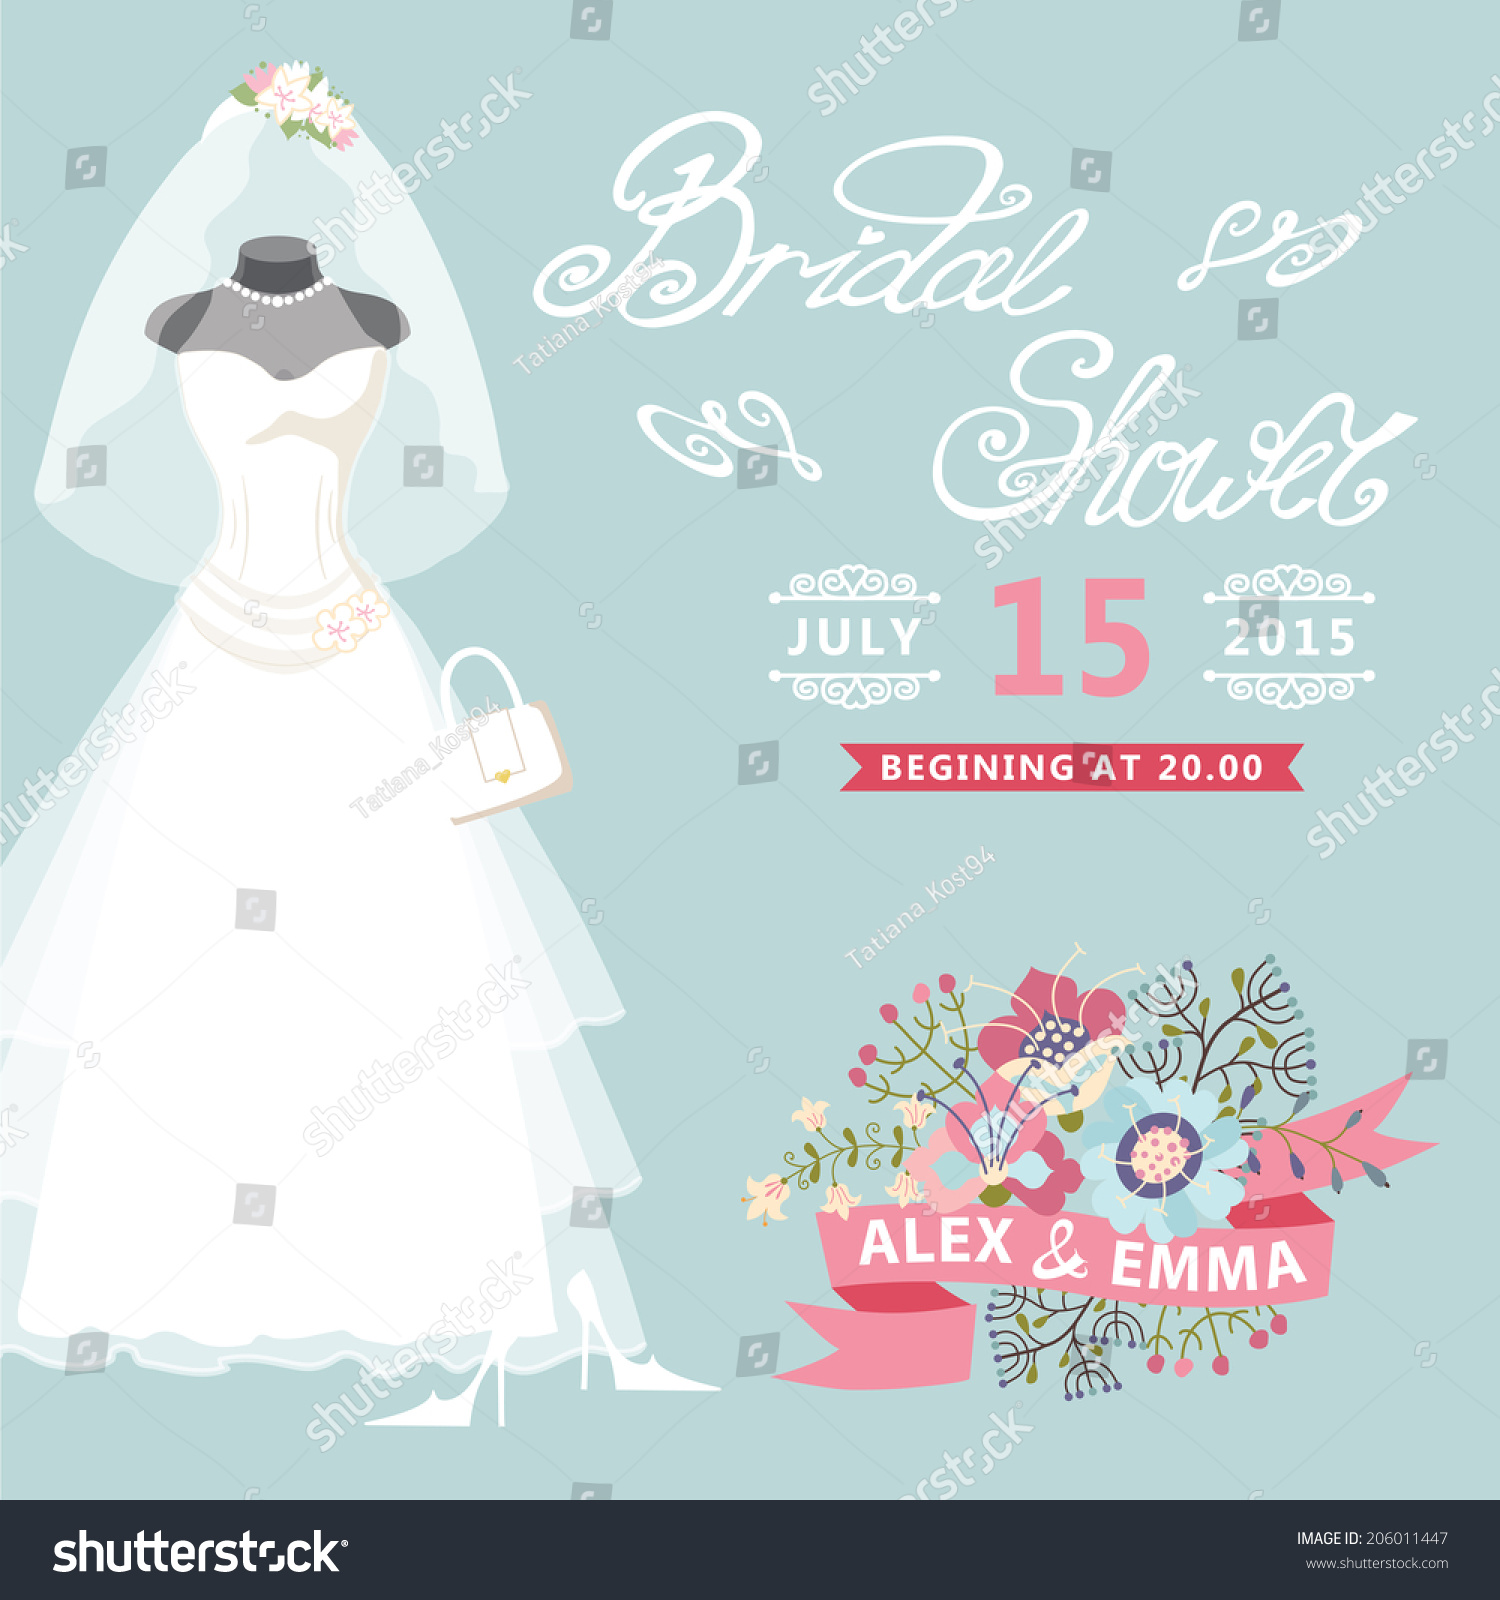 Bridal Shower Card Floral Elements Composition Stock Vector